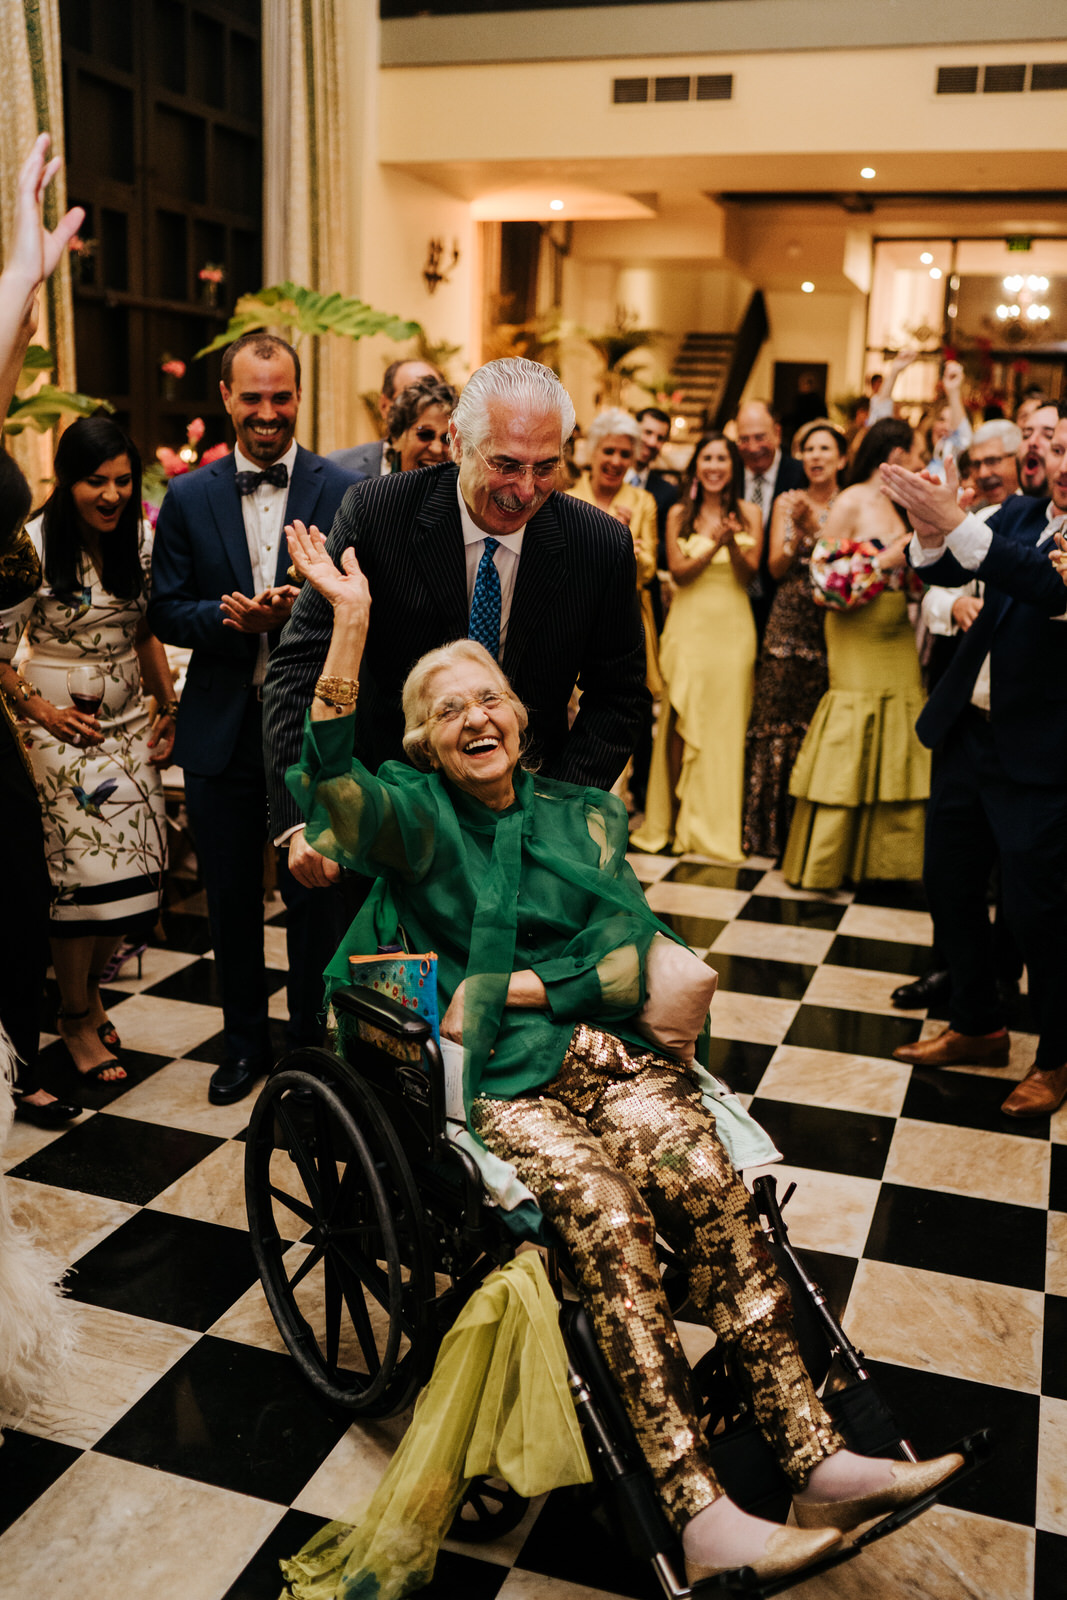 Bride's grandmother is on the dancefloor in her wheelchair and smiling as everyone encourages her and she waves